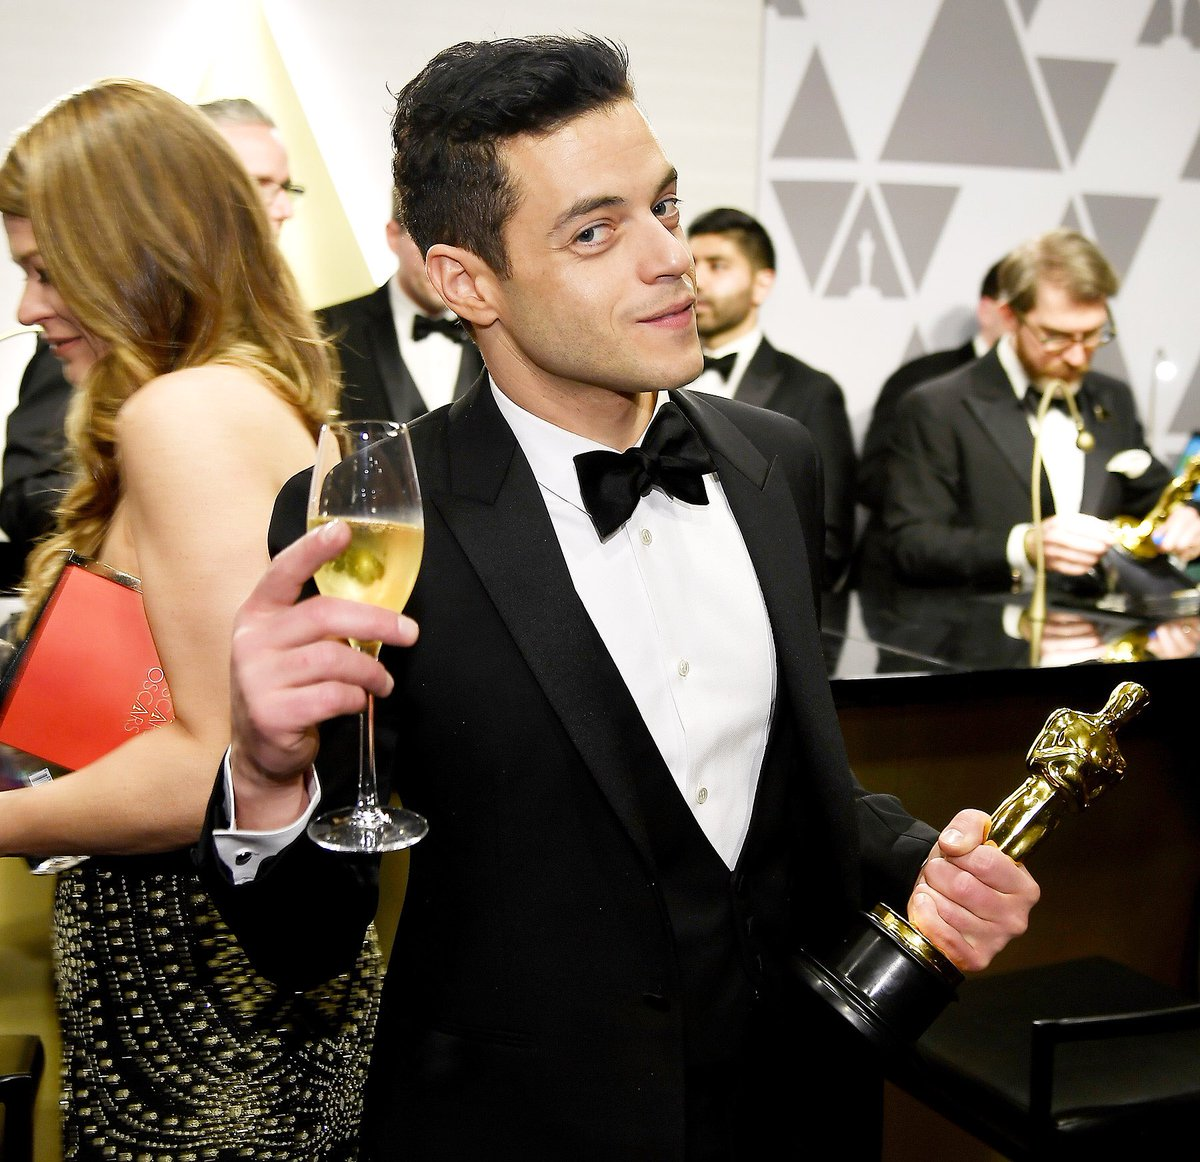 Looks like the Cooper stannies are still torqued about Rami Malek's Oscar. They're like body-painted sports fanatics squawking insults at the opposing team, or angry toddlers who can't get a cookie. It would be pretty funny if it wasn't so insulting to Rami. #RamiMalek #StayMad